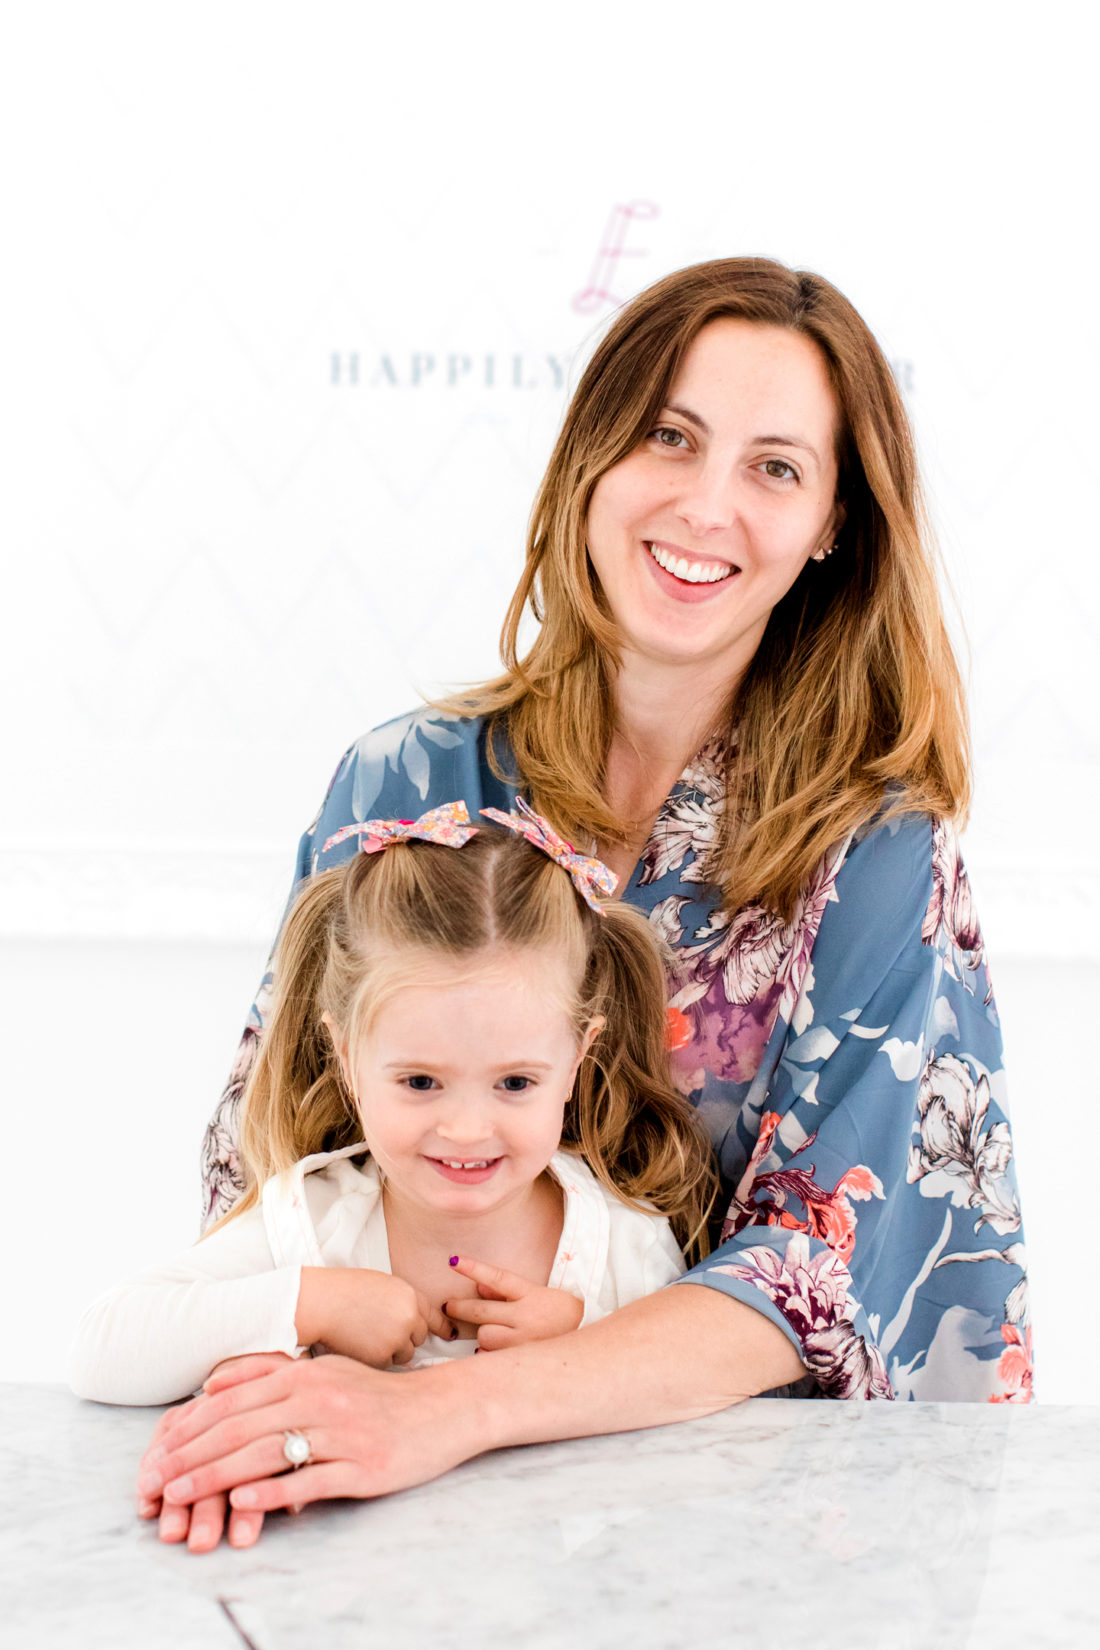 Eva Amurri martino sits with daughter, Marlowe, as she prepares to apply her makeup for a blog photo shoot